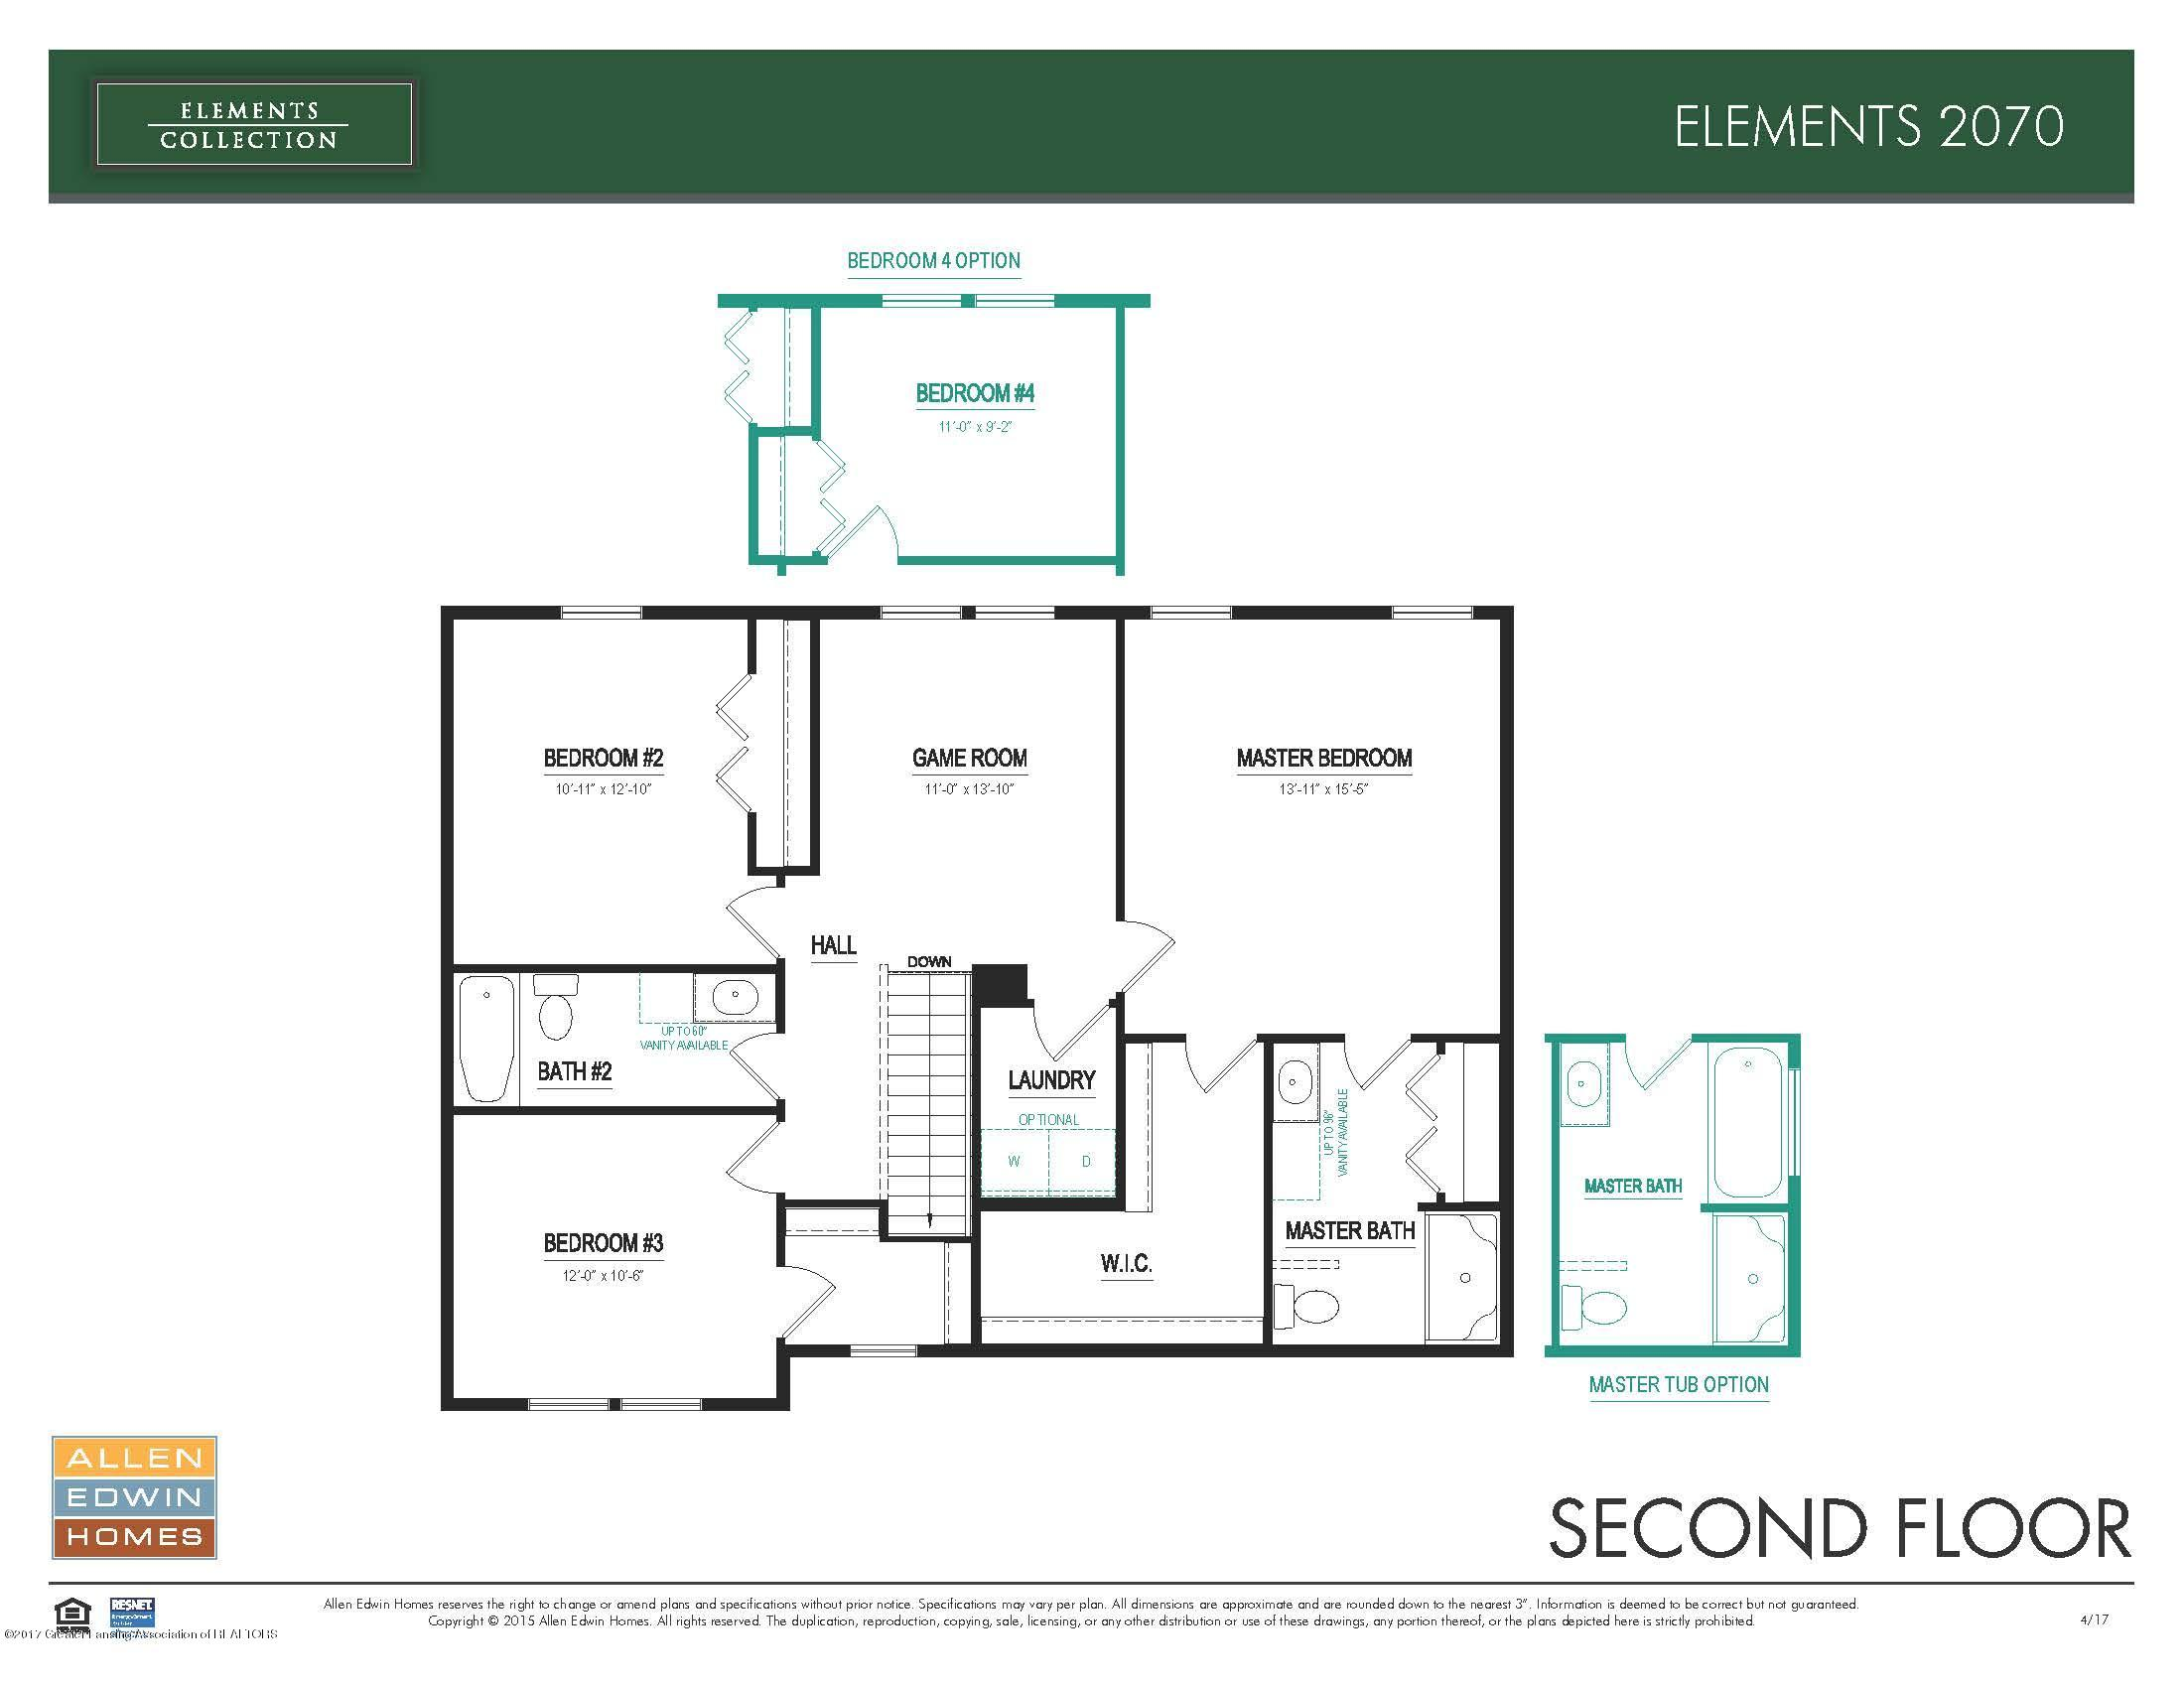 960 Pennine Ridge Way - Elements 2070 Second Floor - 4